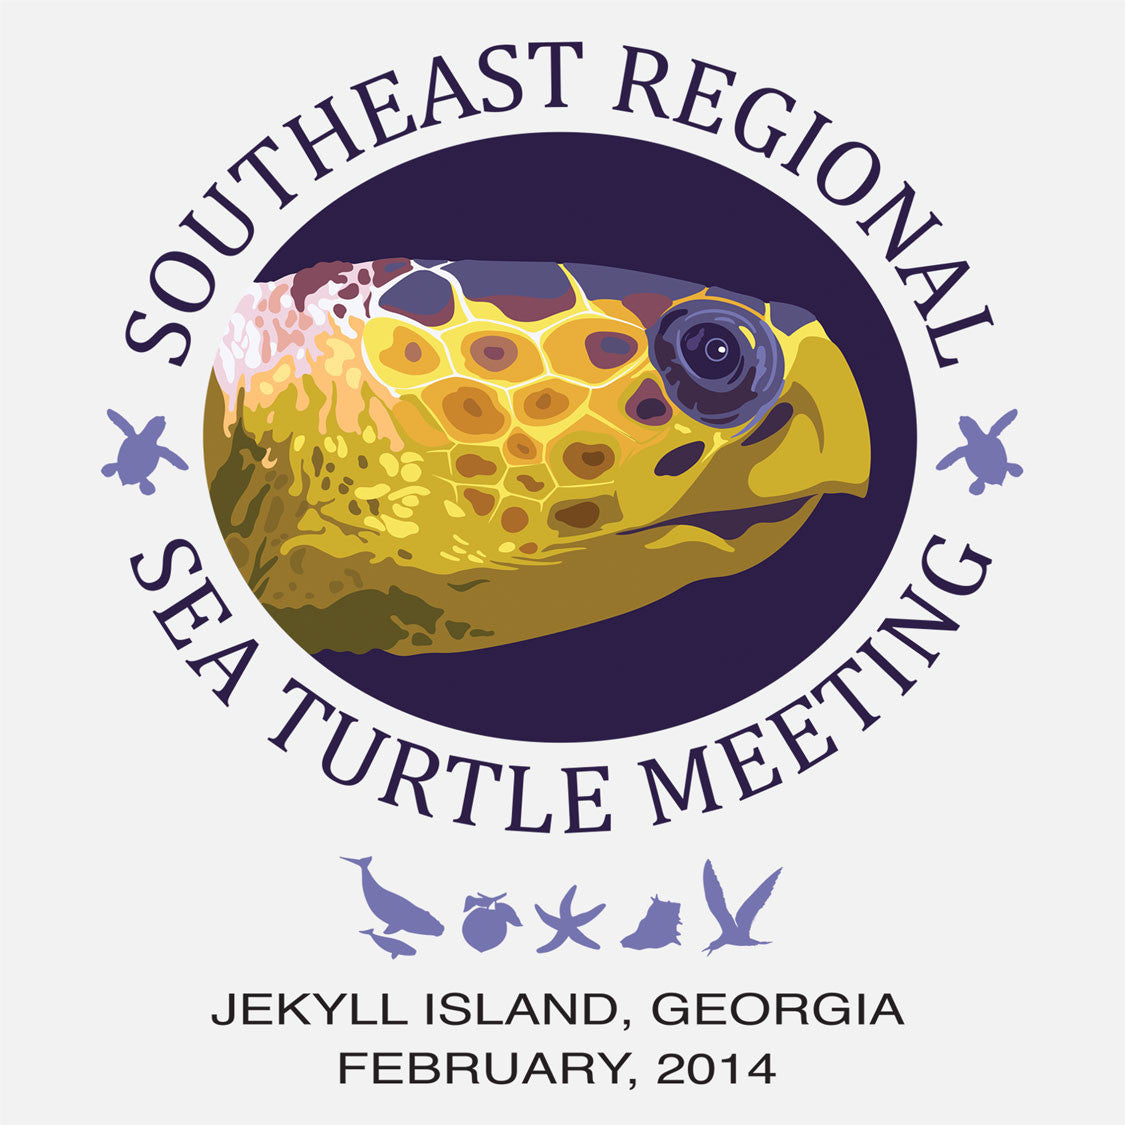 Southeast Regional Sea Turtle Meeting logo, Jeckyl Island, Georgia, 2014. The logo is a graphic depiction of a loggerhead sea turtle and Georgia ic